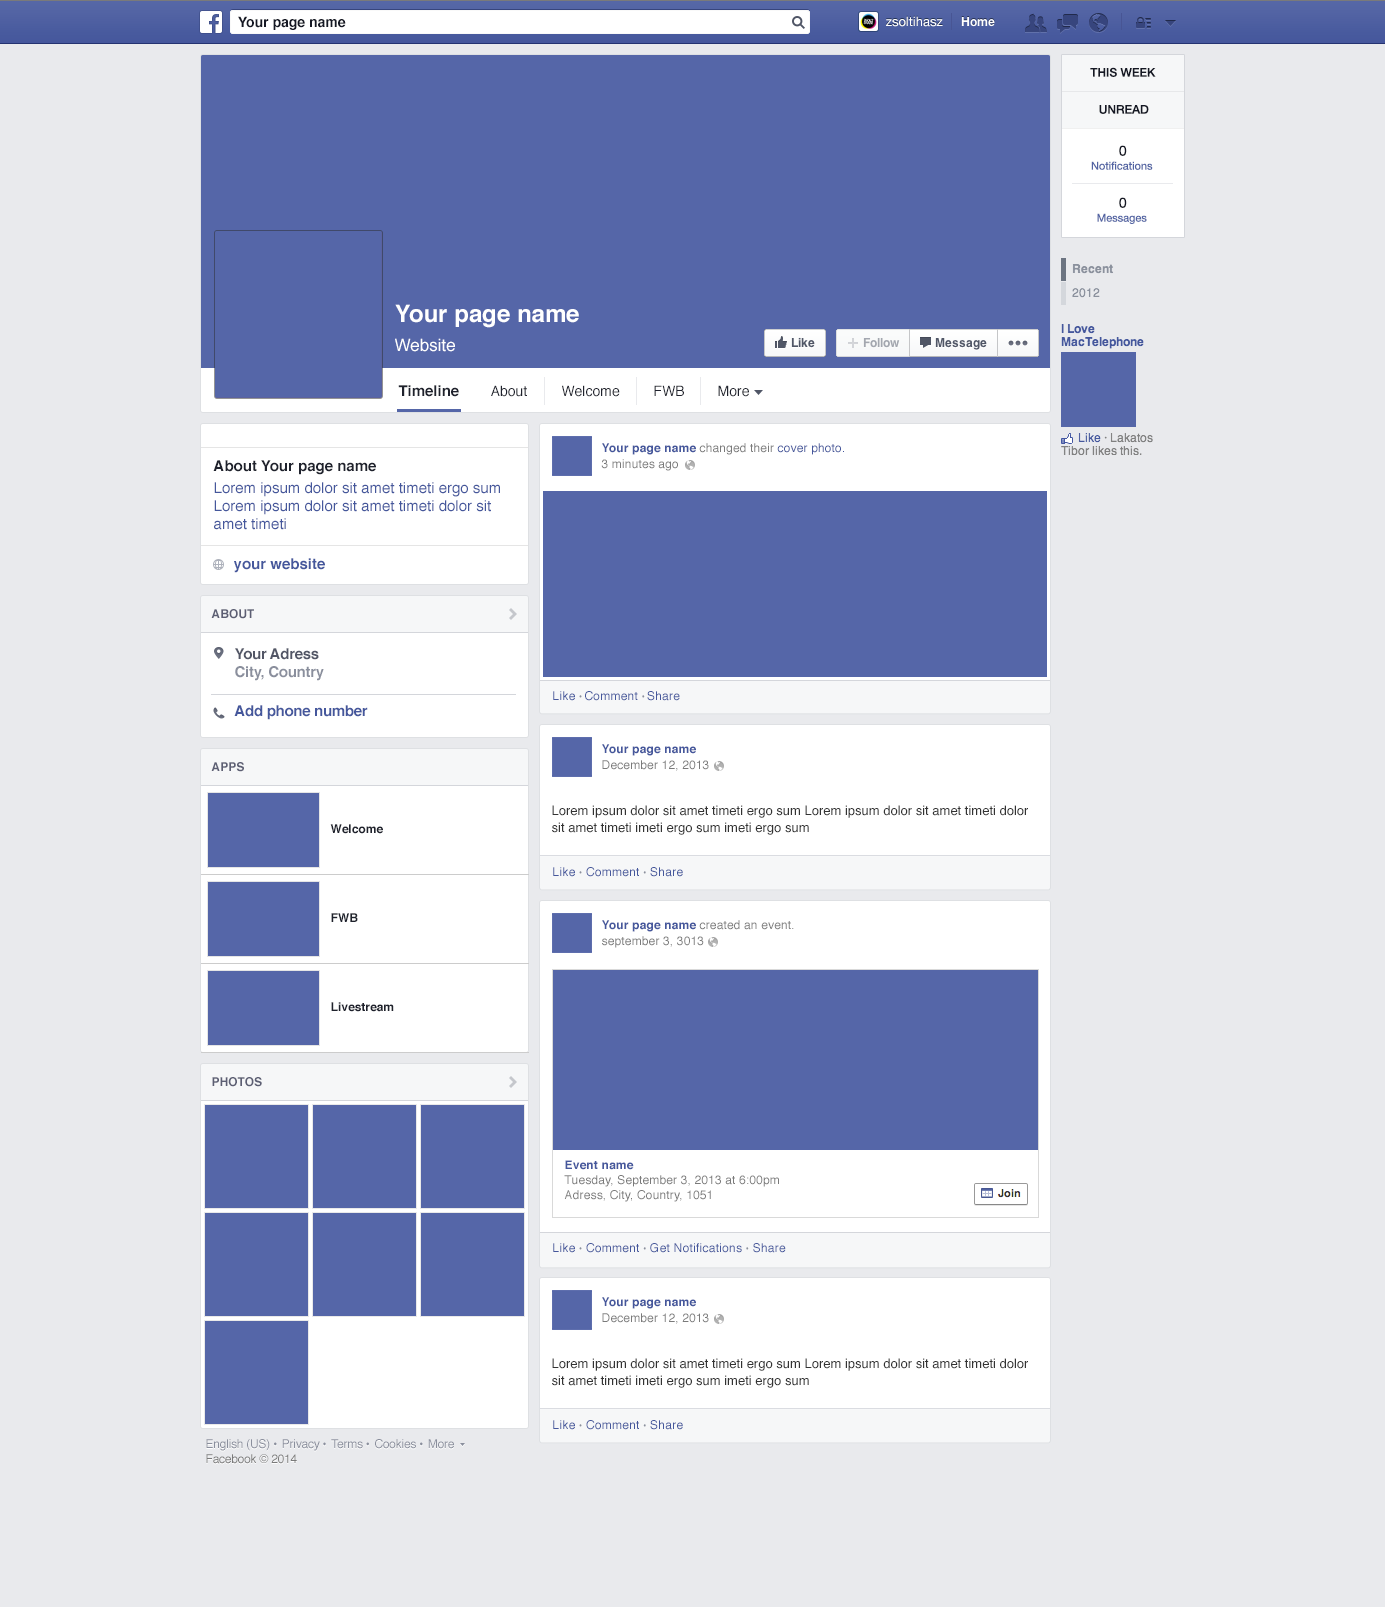 facebook page design template free - Yolar.cinetonic.co